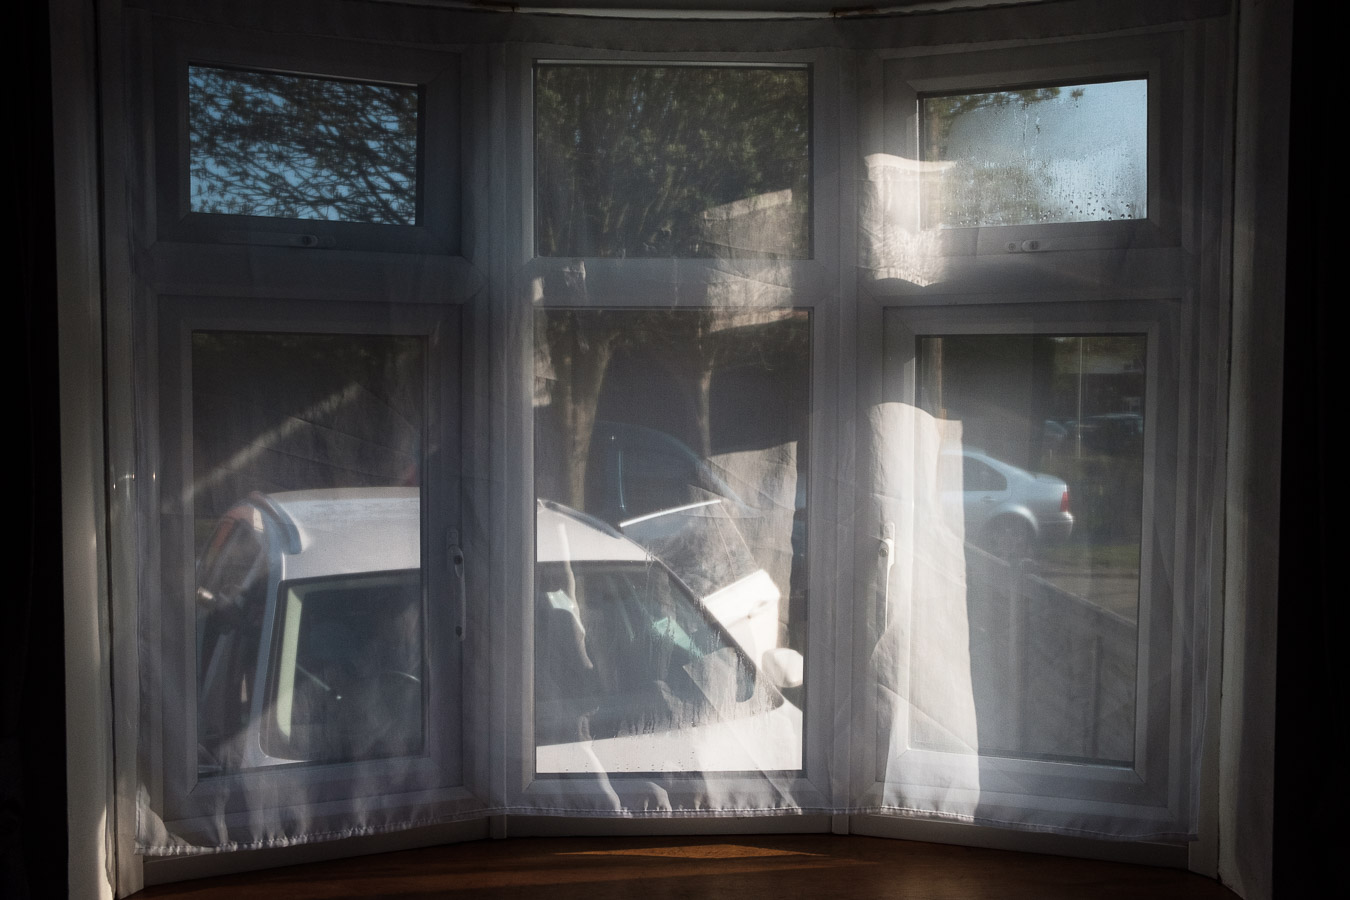 Photo taken from family living room showing recently washed car through a net curtain.